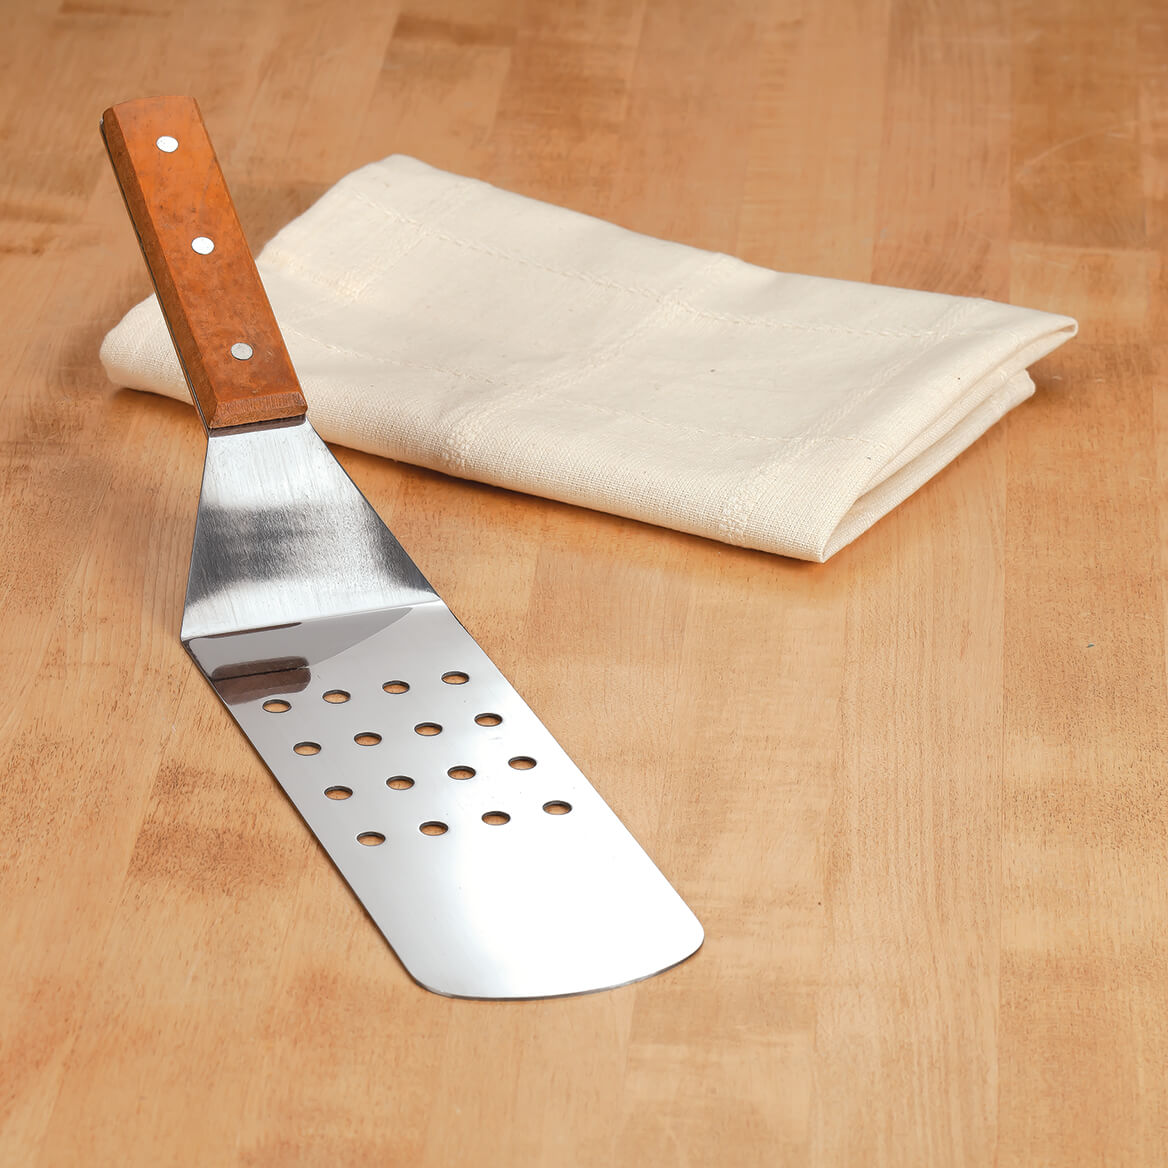 Premium Spatula by Home Marketplace-369480